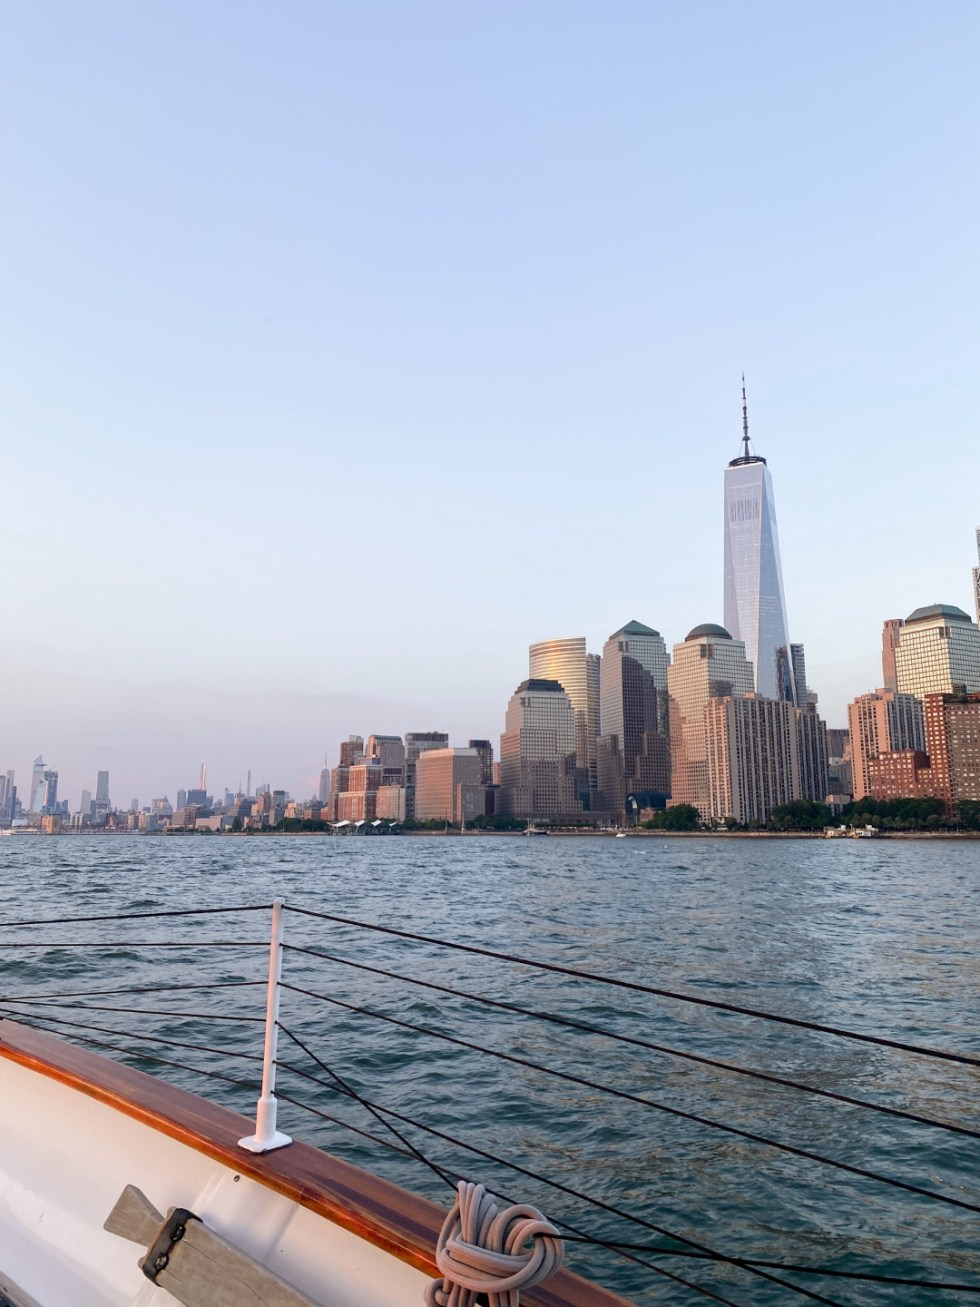 NYC Summer Weekend: Things to Do in NYC in the Summer - I'm Fixin' To - @imfixintoblog   NYC Summer Weekend by popular NC travel blog, I'm Fixin' To: image of a boat near the NYC skyline.